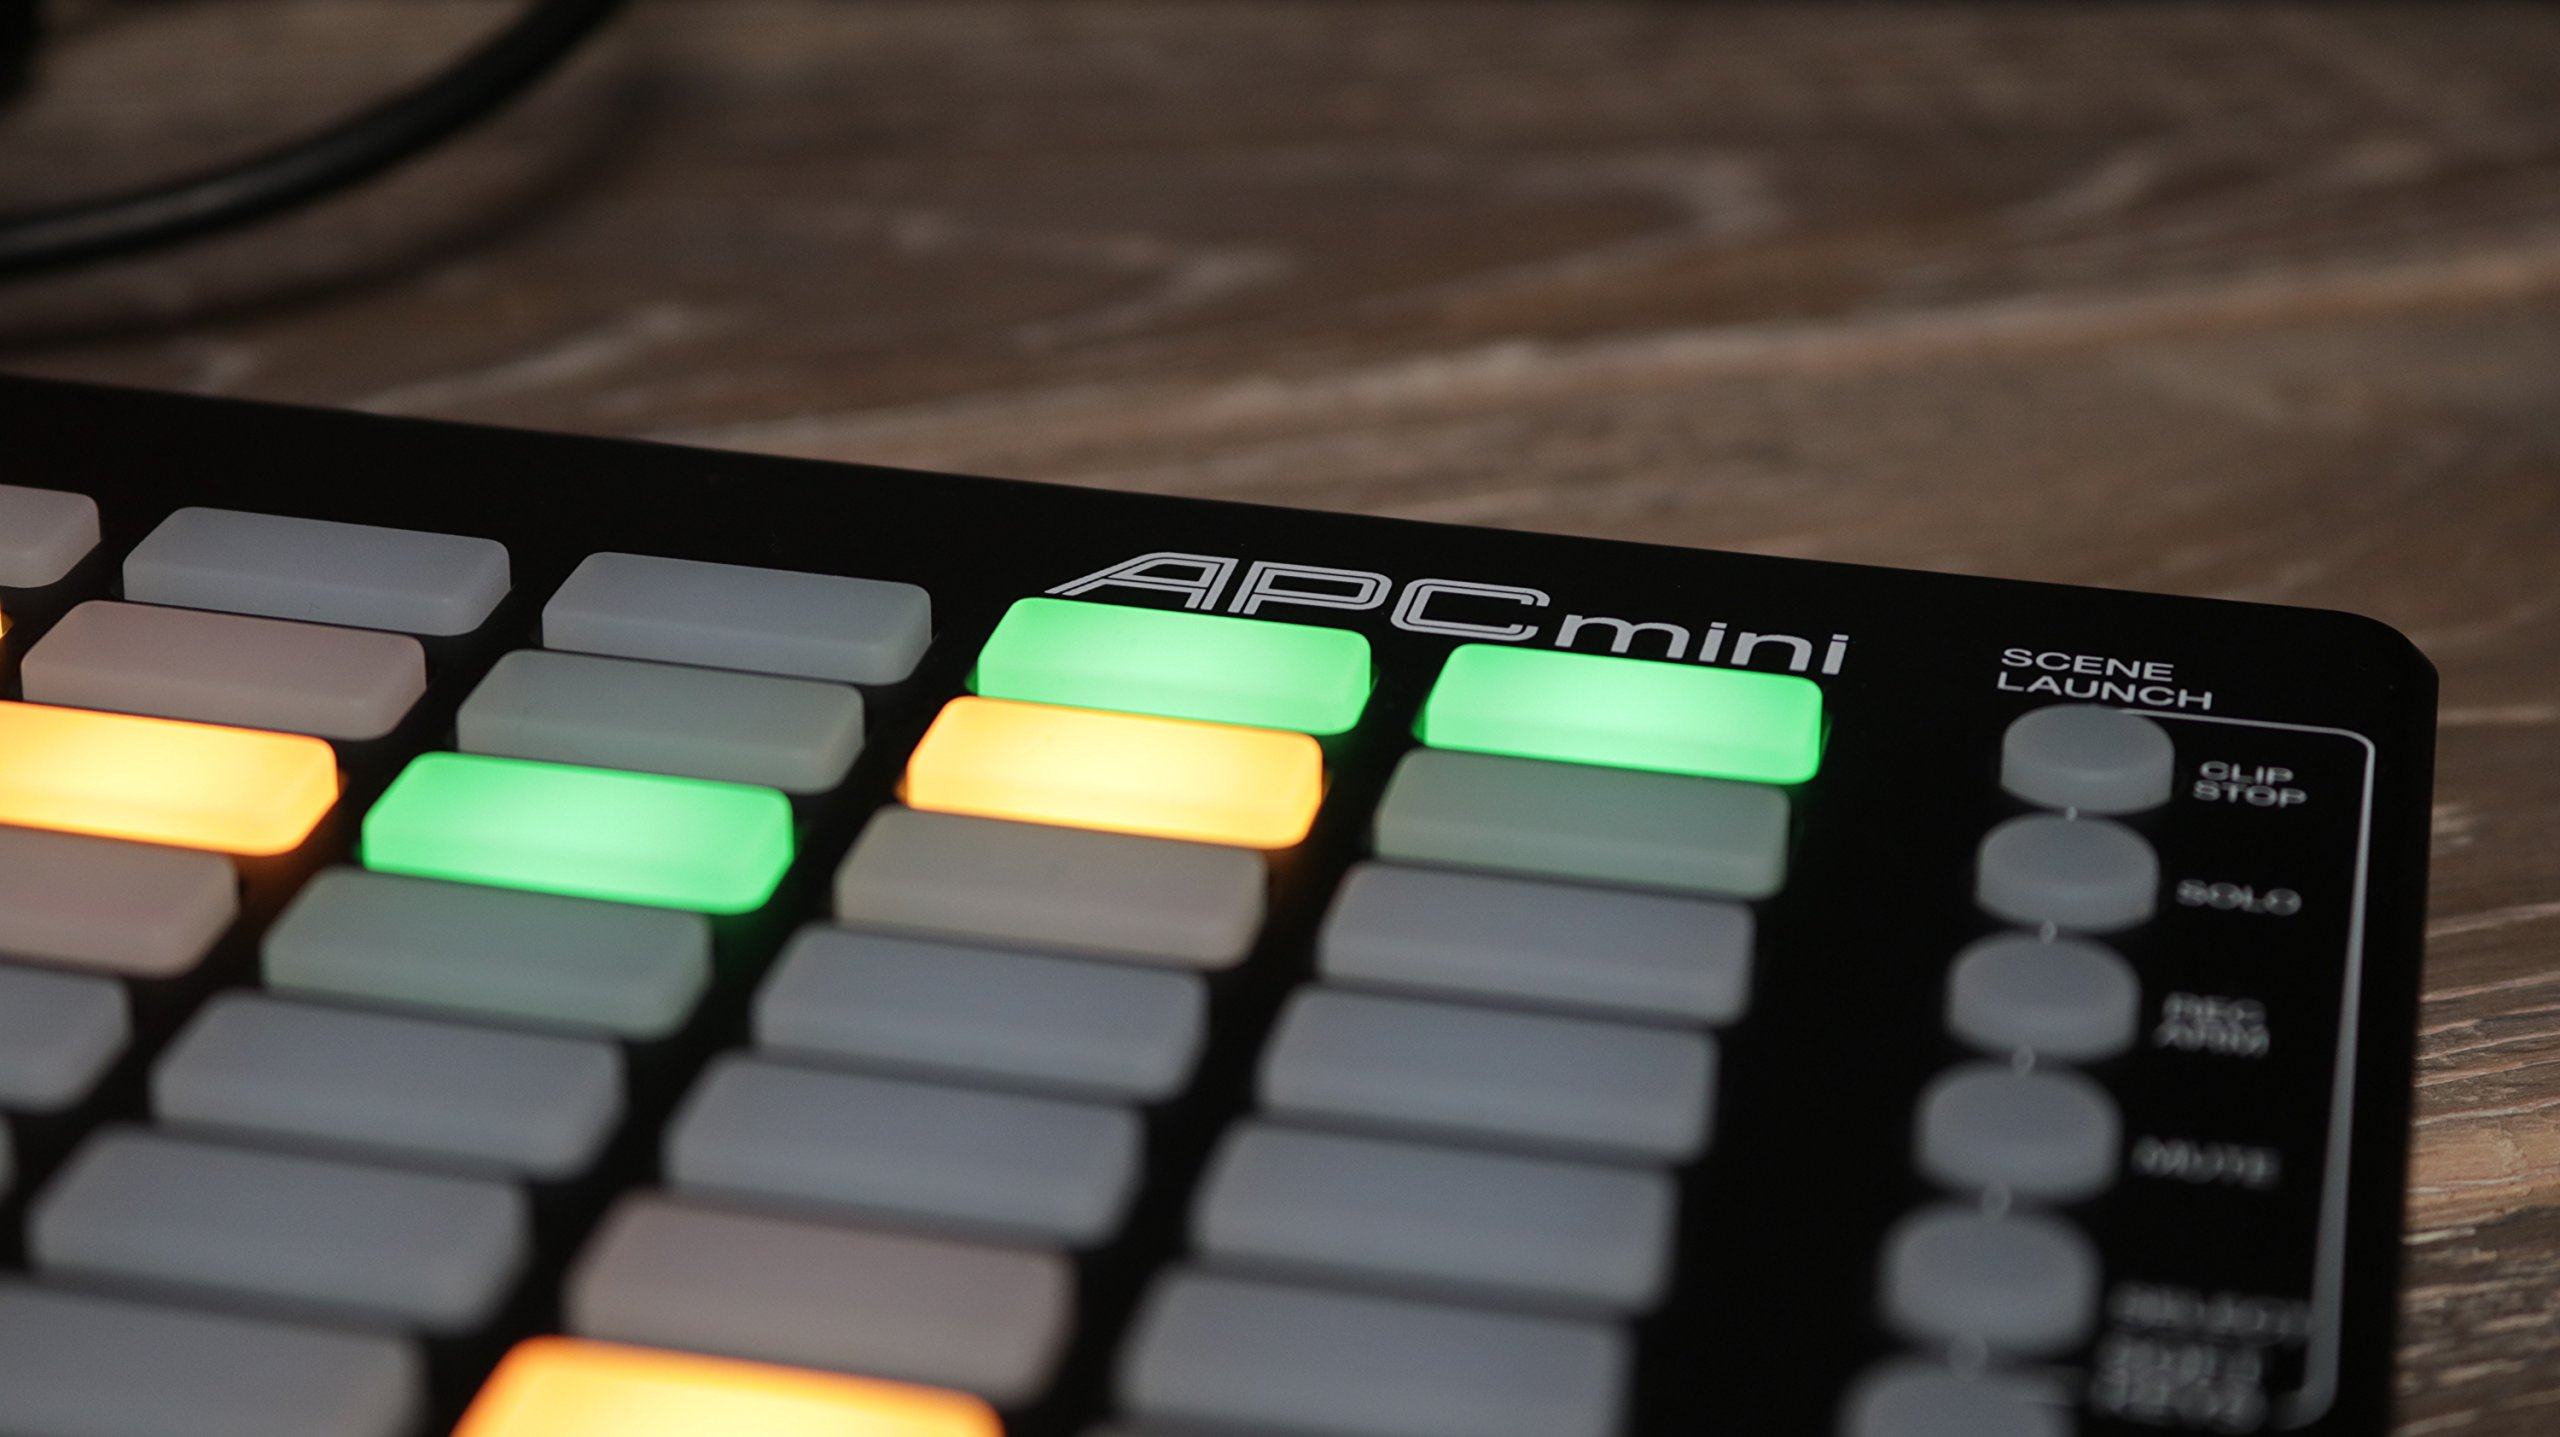 Akai Professional APC Mini | Compact Ableton Live controller with Ableton Live Lite Download (8x8 Backlit Clip-Launch Grid) by Akai (Image #7)